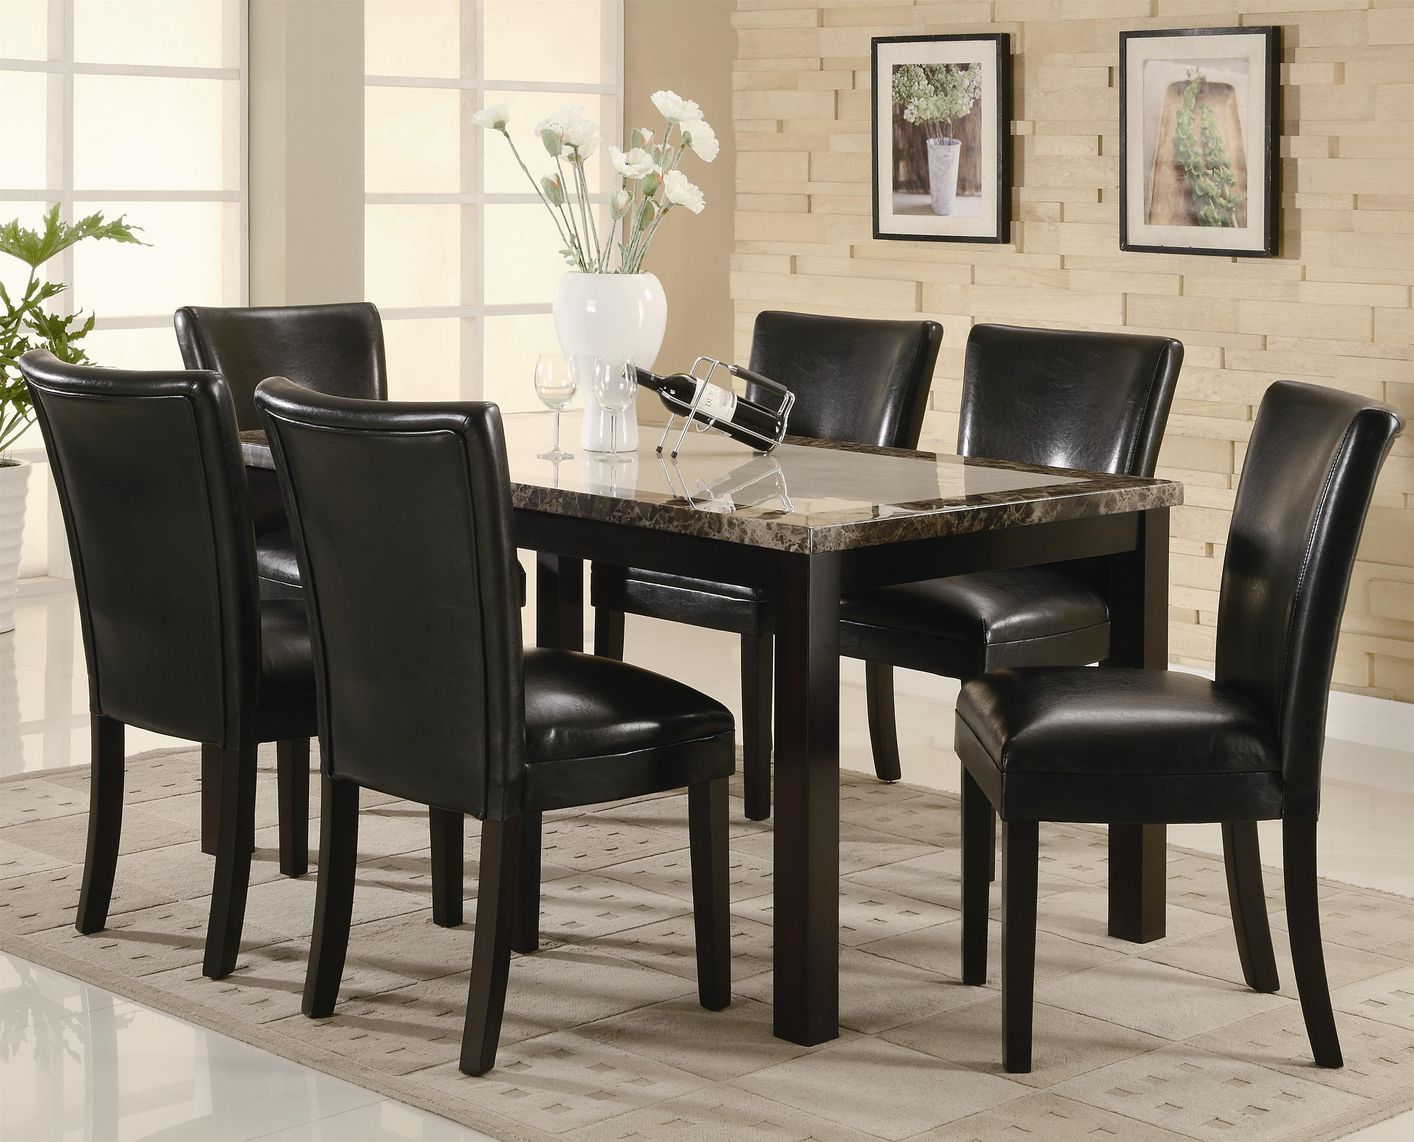 Coaster carter 102260 102262 brown wood and marble dining for Black dining room table set